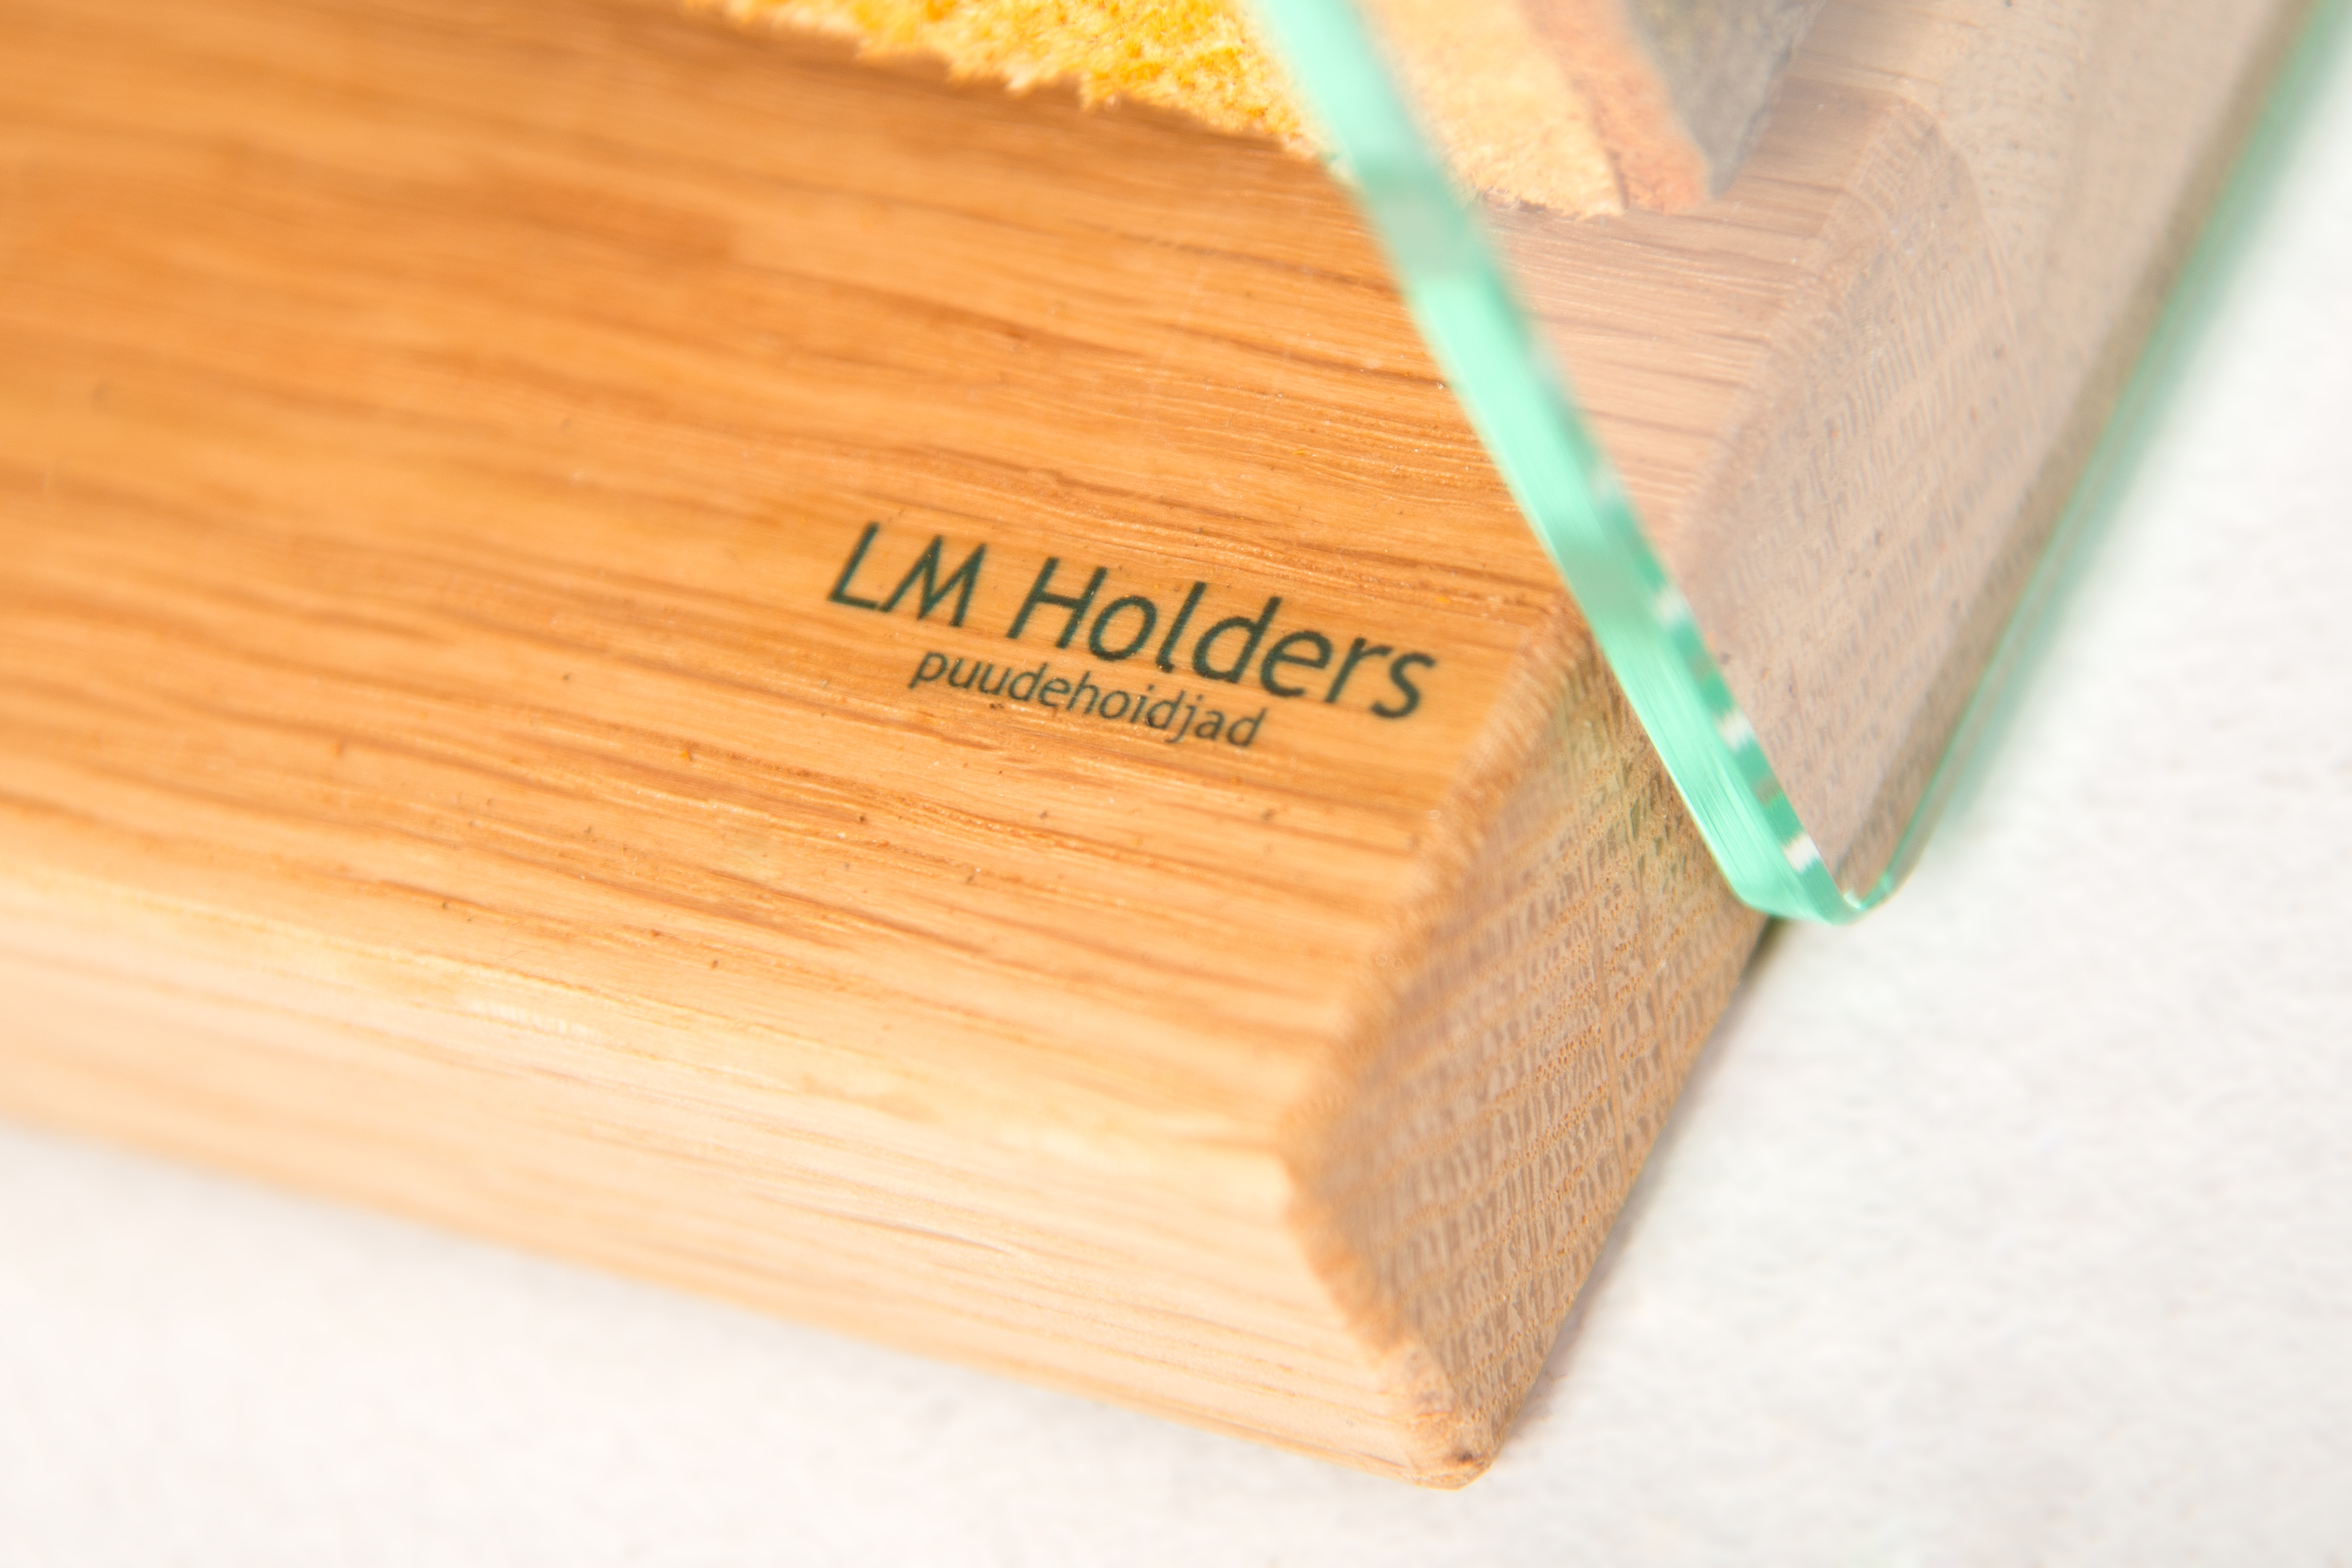 LM Holders